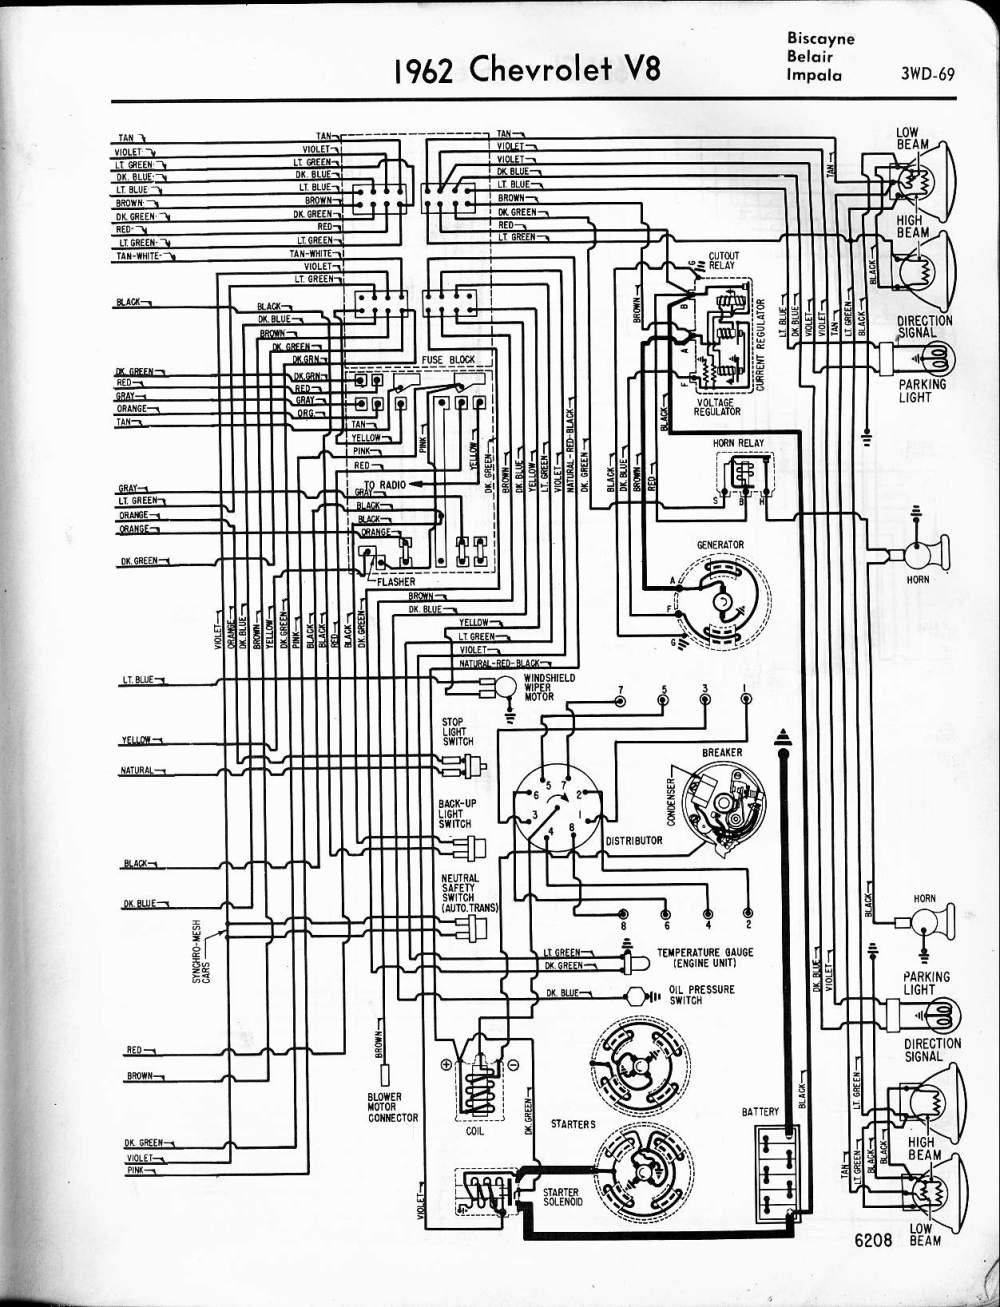 medium resolution of 1962 chevrolet wiring diagram wiring diagram sheet wiring diagram for 1962 chevrolet impala